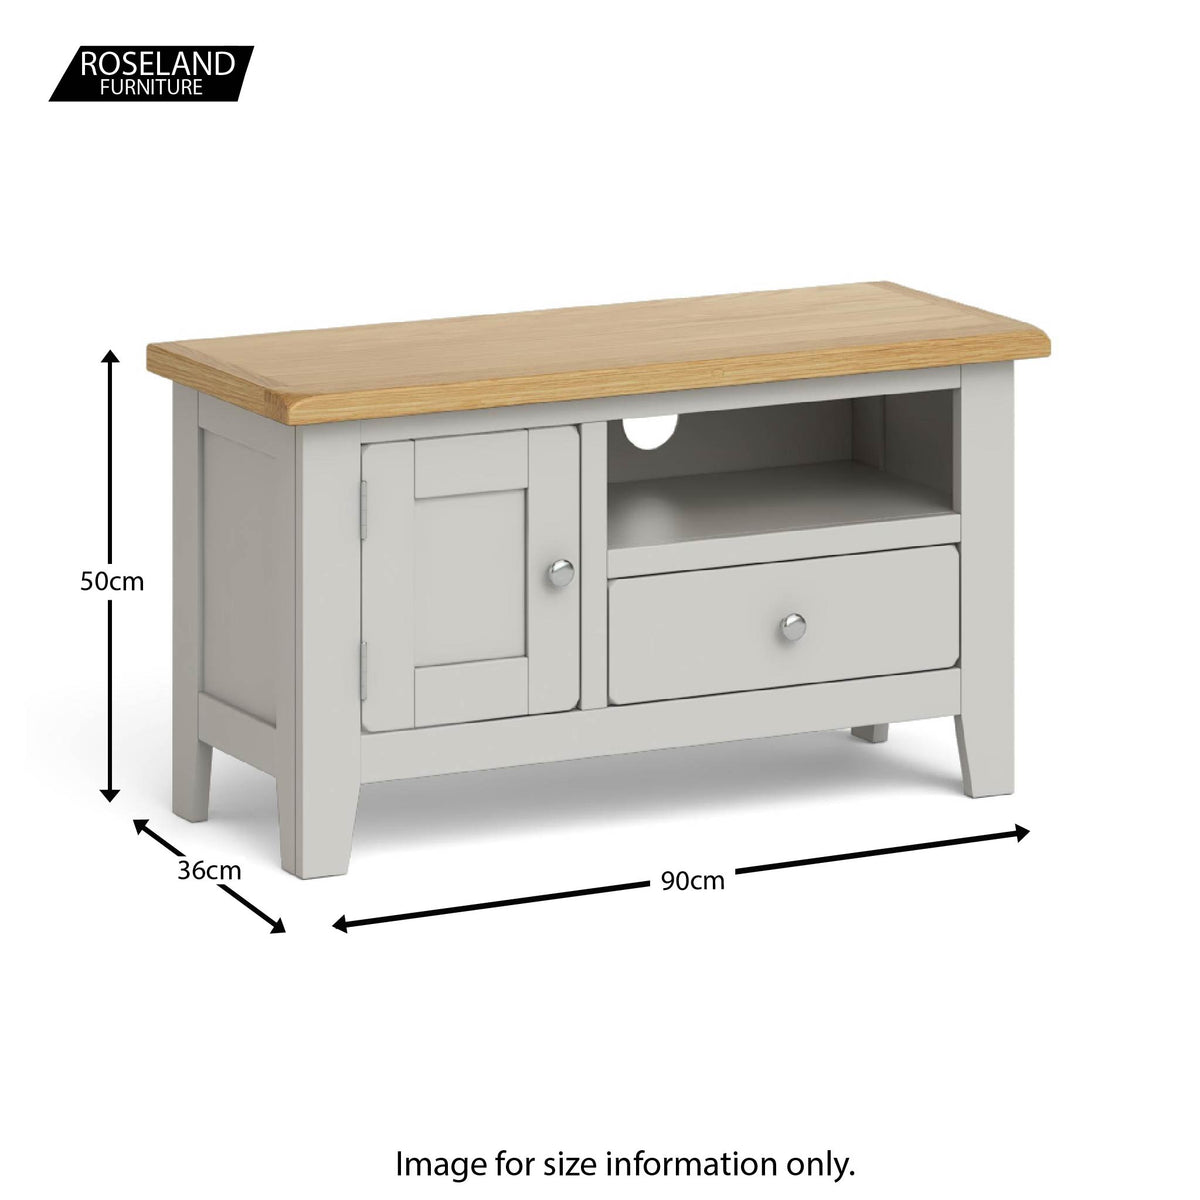 Dimensions - Lundy Grey Small TV Stand